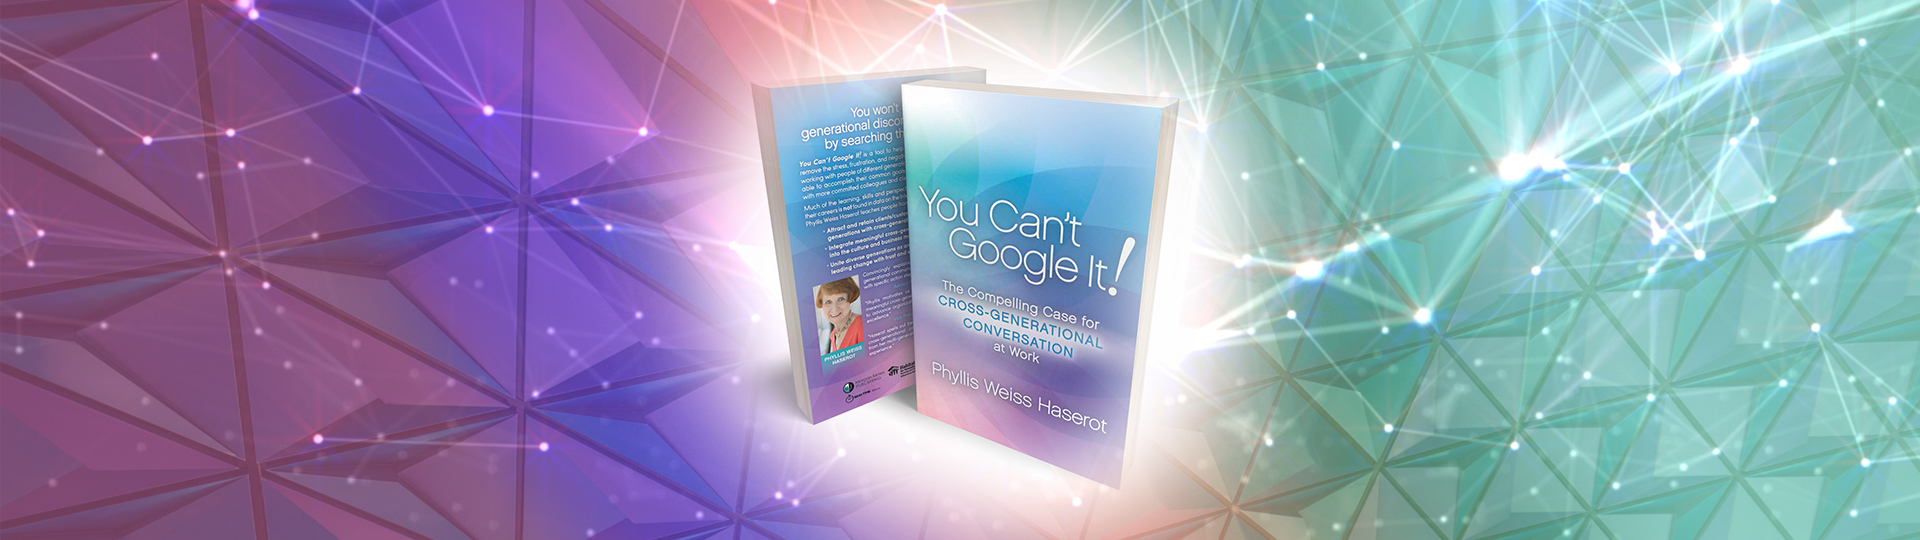 You Can't Google it Banner